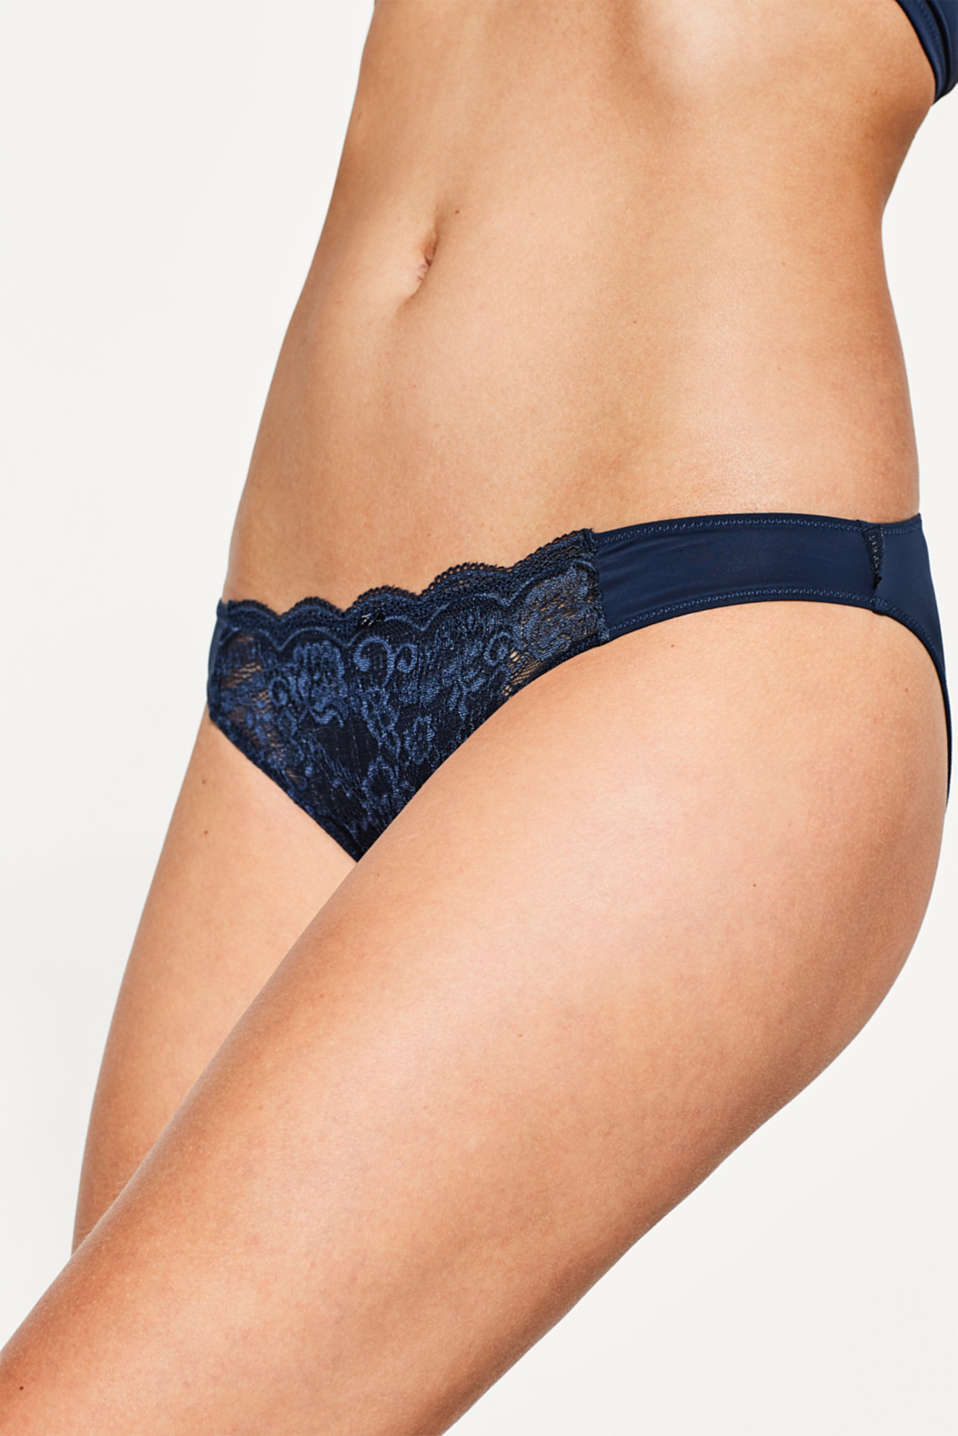 Hipster briefs with lace